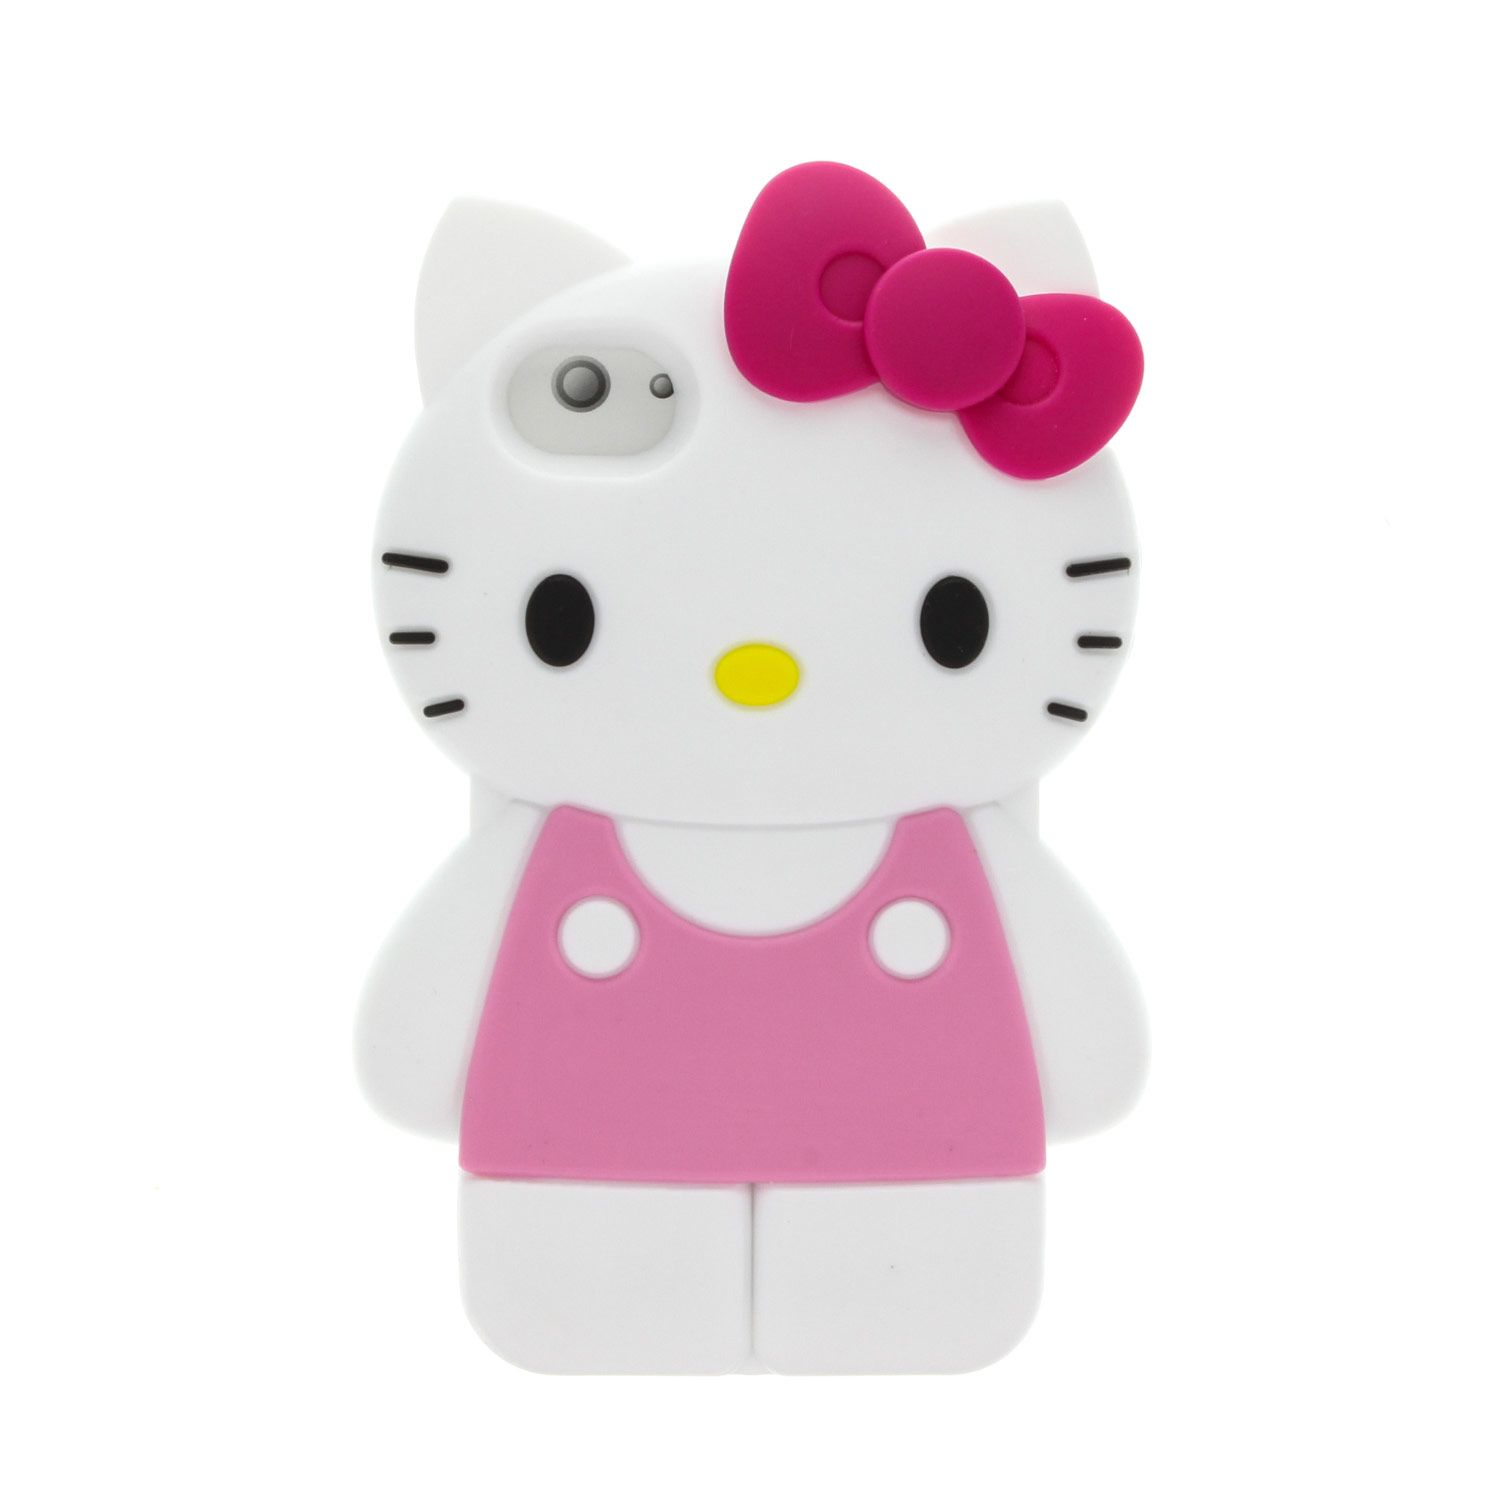 Hello kitty 3d phone cover iphone 4 compatible iphone